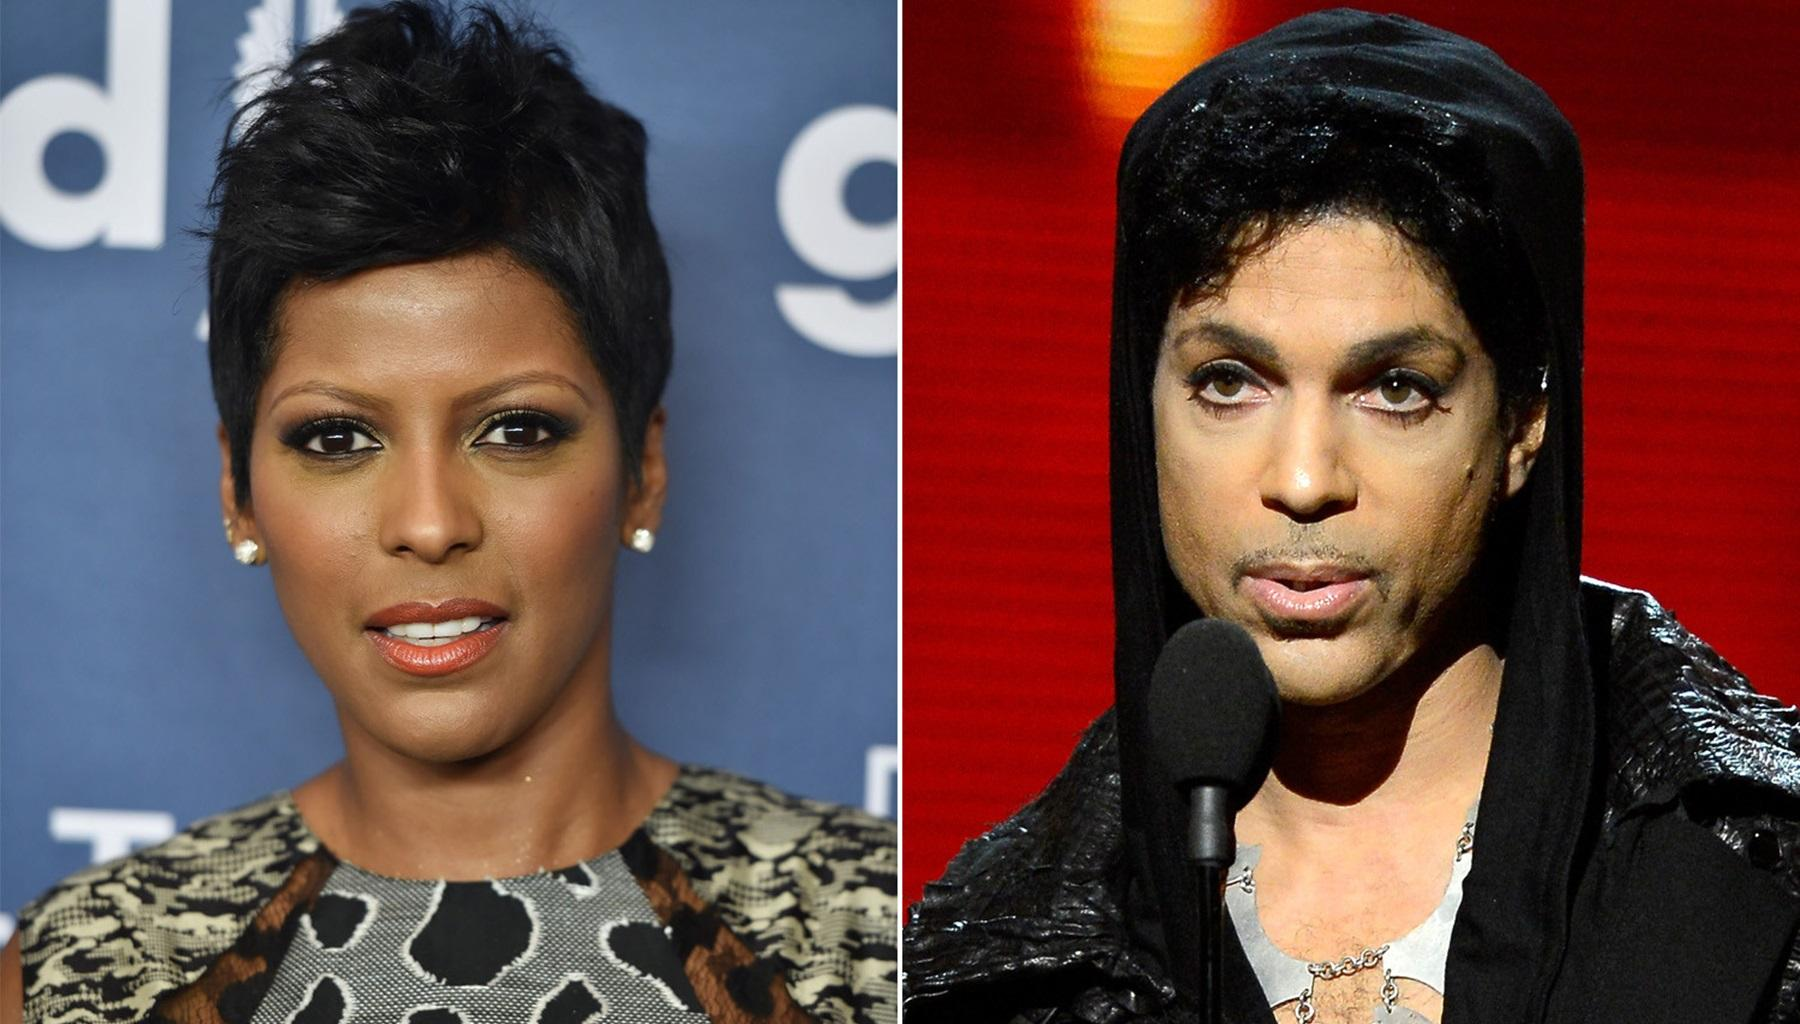 Tamron Hall Shares Very Intimate Emails She Received From Legendary Artist Prince, Hints At A Romance, And Explains Why They Talked Every Morning